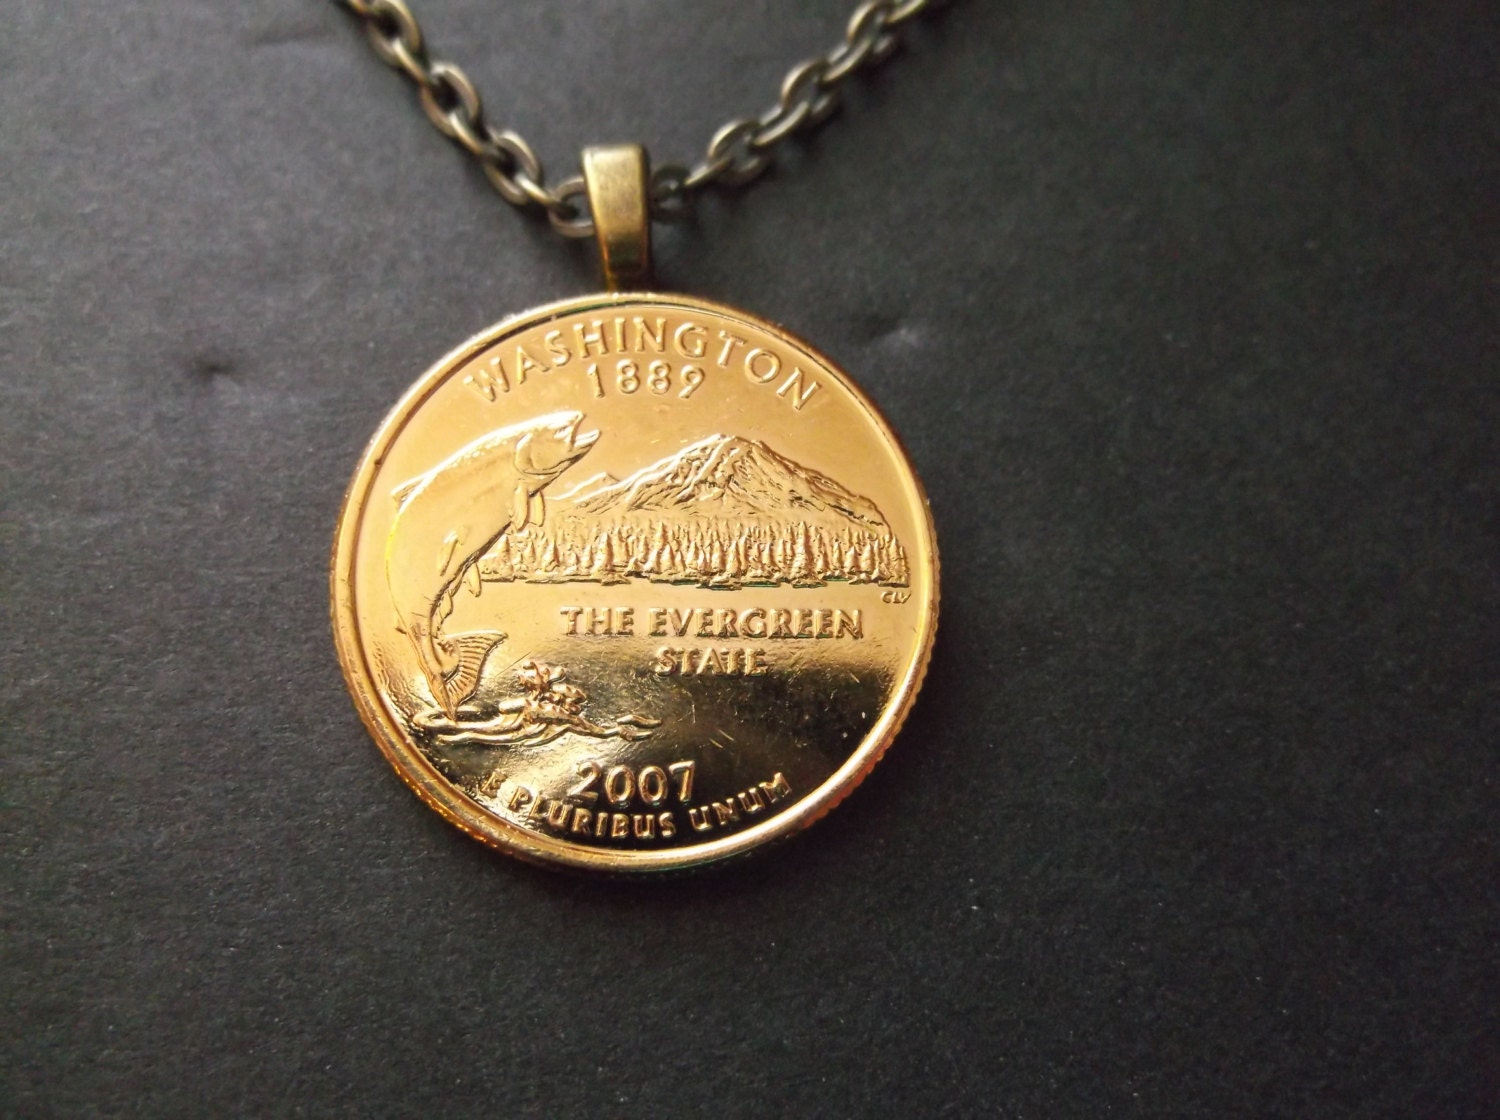 Washington United States Gold Colored Quarter Coin Necklace